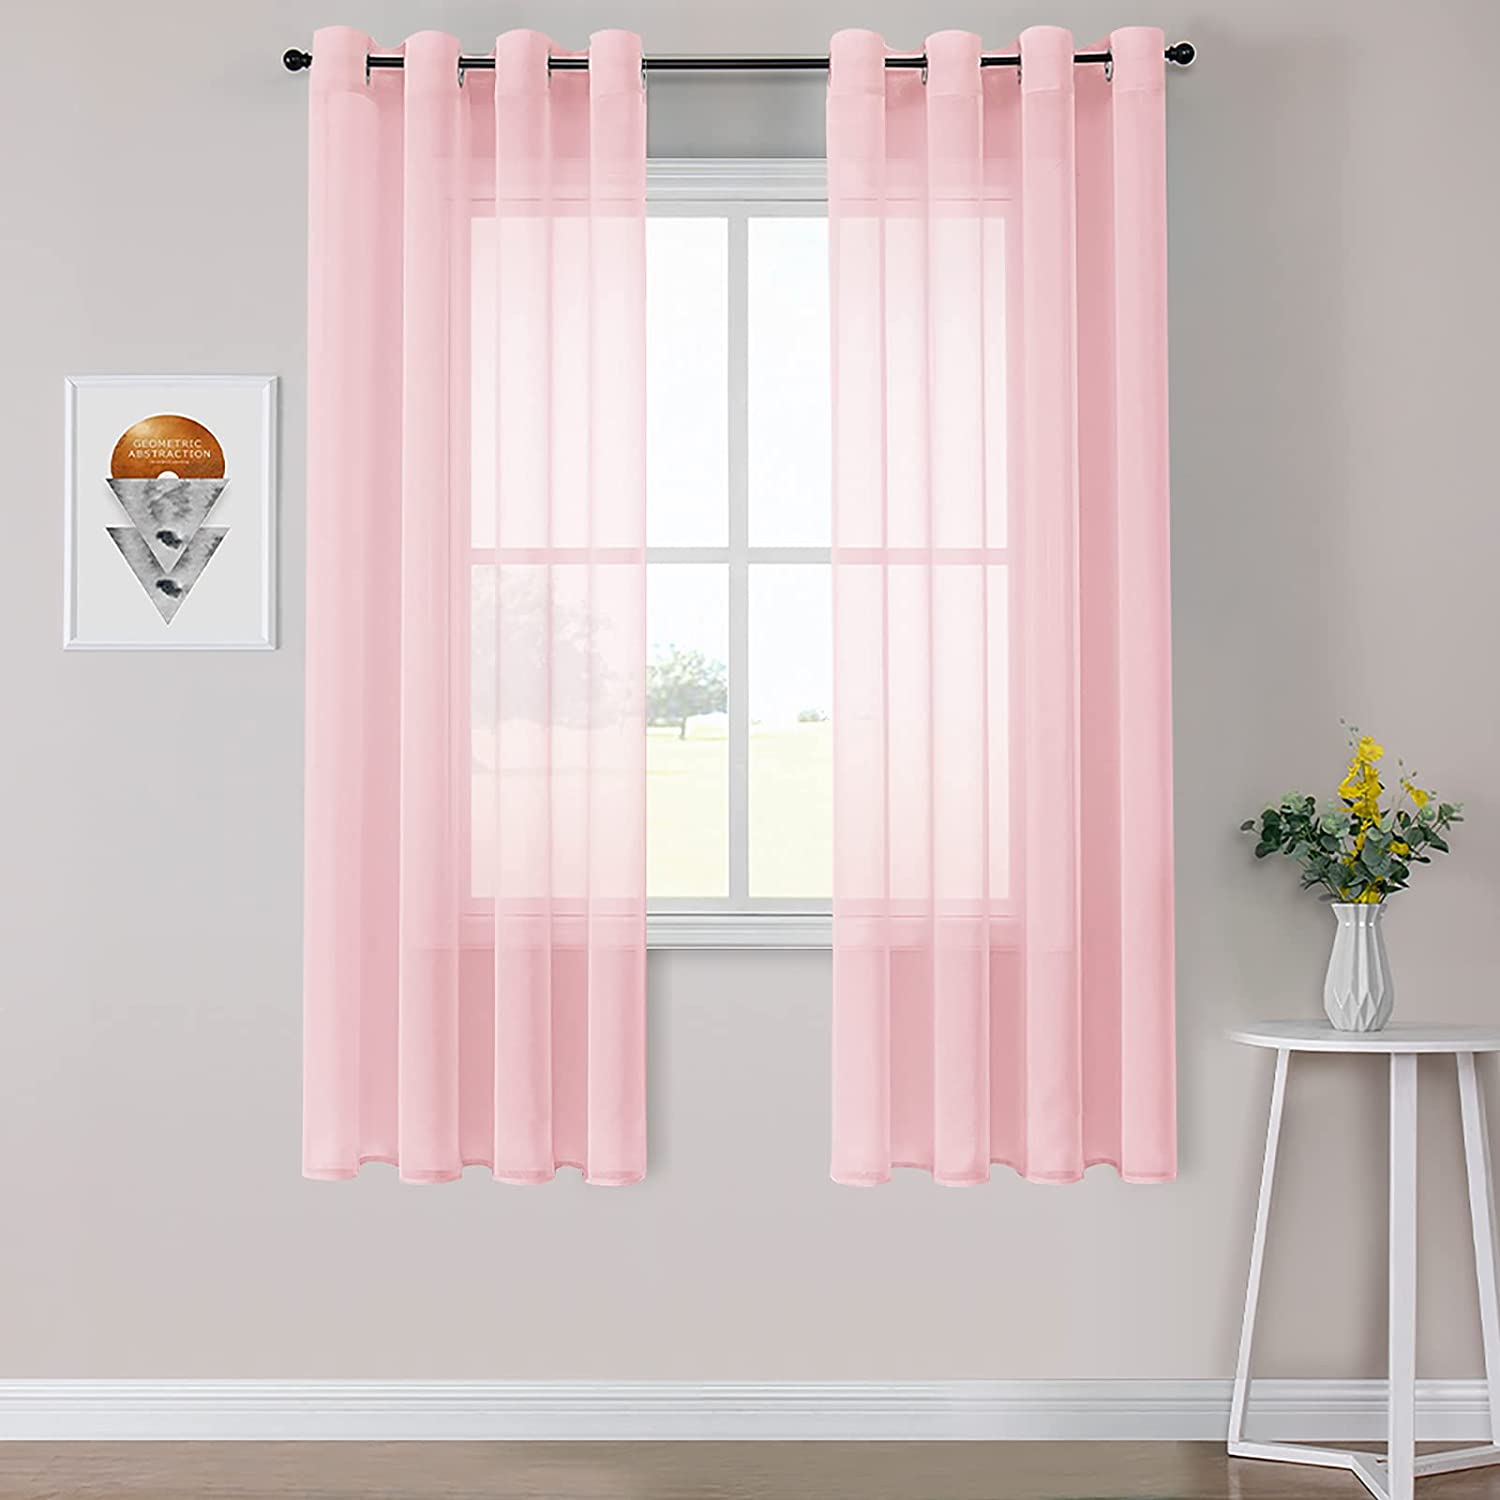 MRTREES Outlet sale feature Pink Sheer Window Curtains Grommet Free shipping on posting reviews Gauzy Top Drape